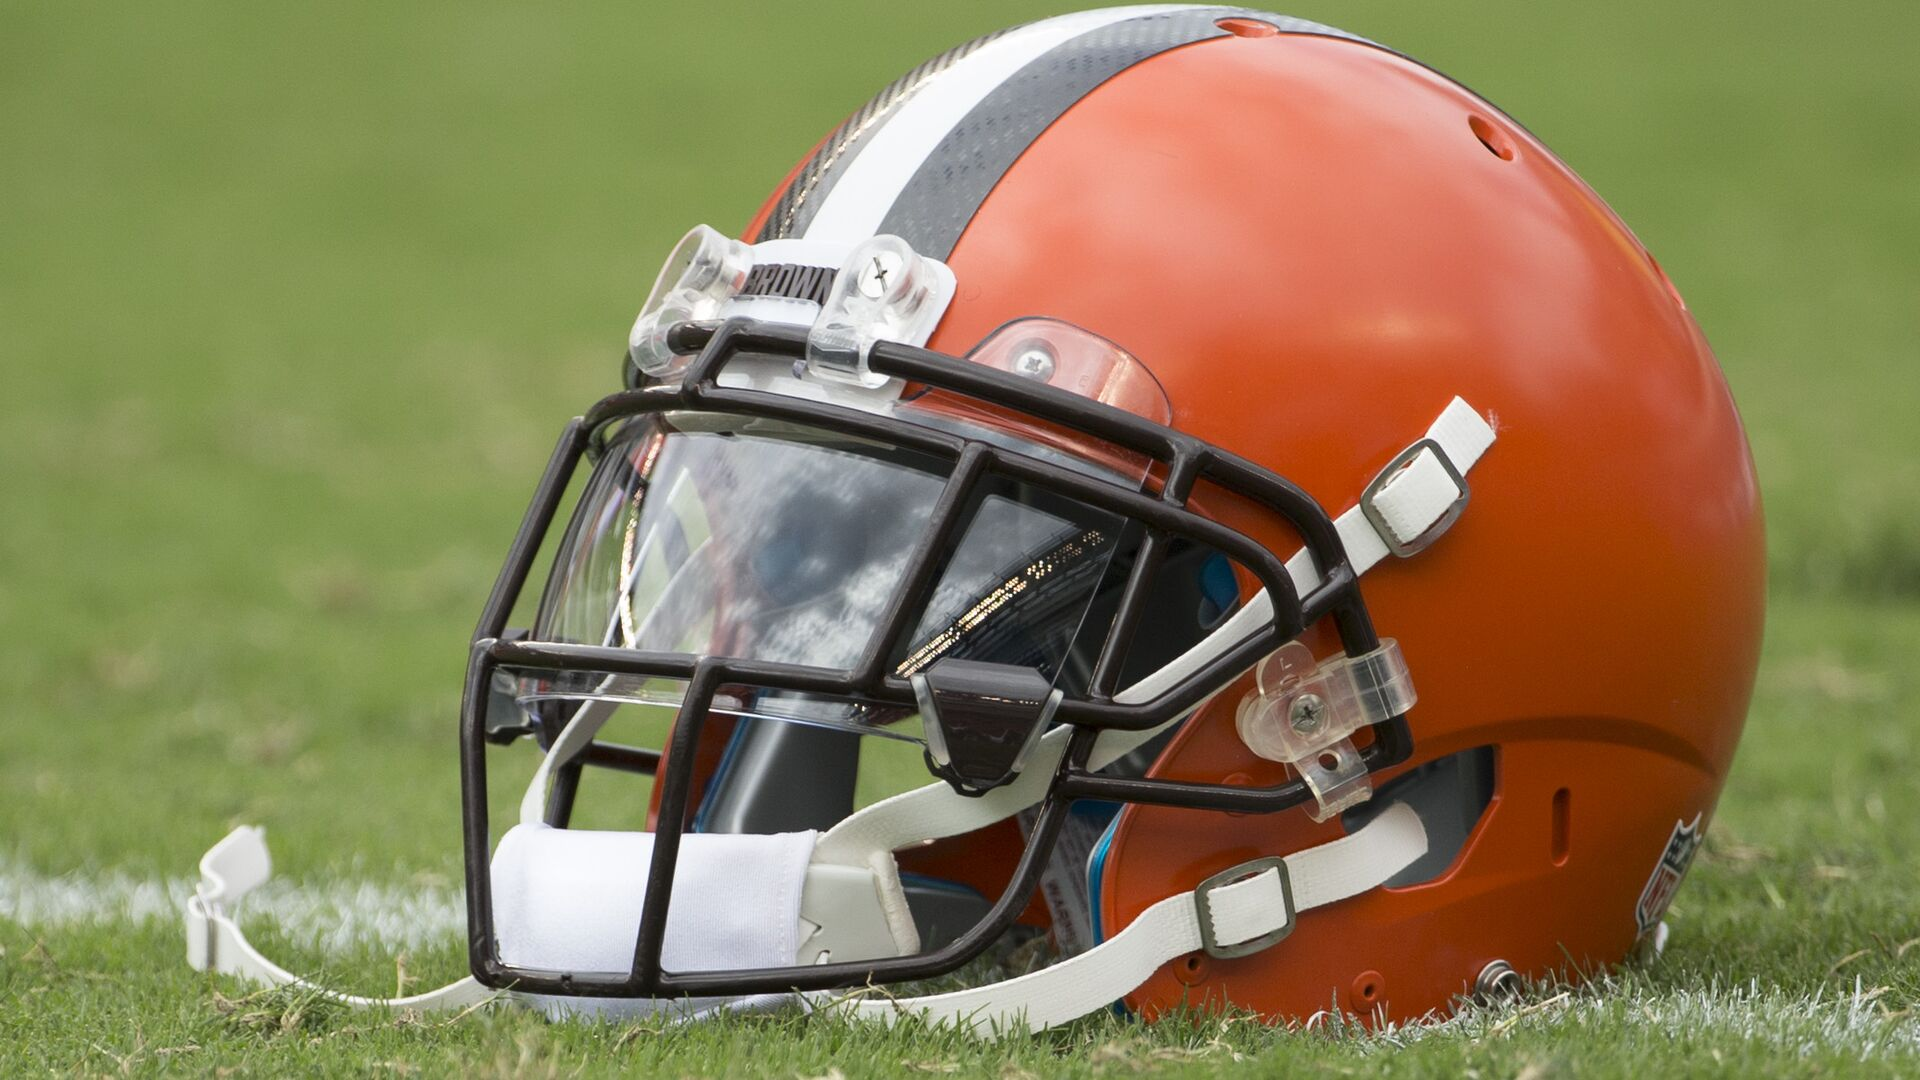 Report: Joe Woods 'on track' to become Cleveland Browns defensive coordinator